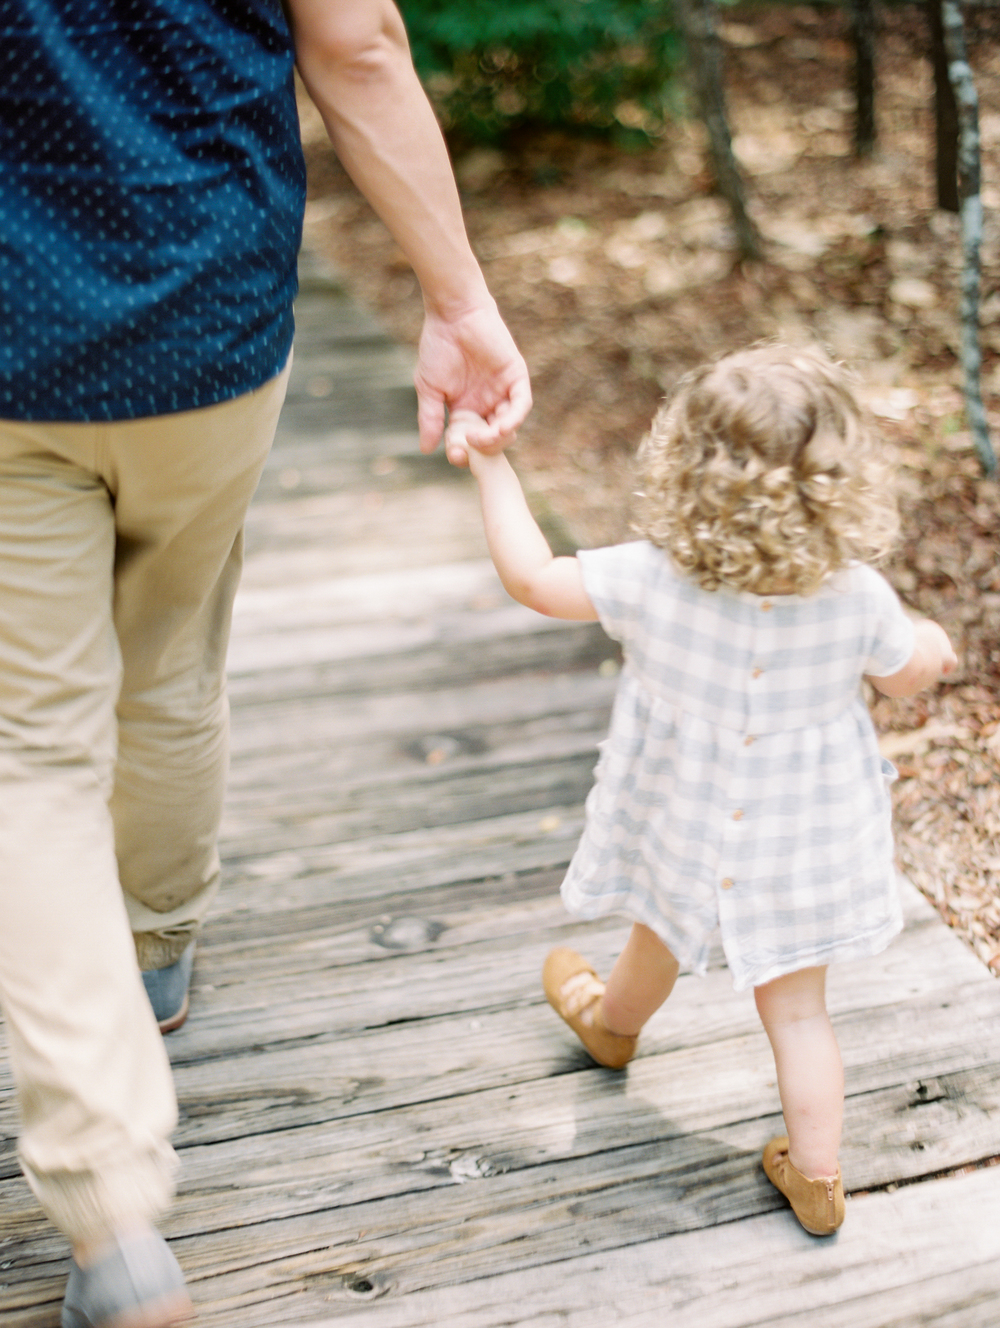 Holding daddys hand | Kaylie B. Poplin Photography | Fine Art Film Photographer | Rosemary Beach, Florida